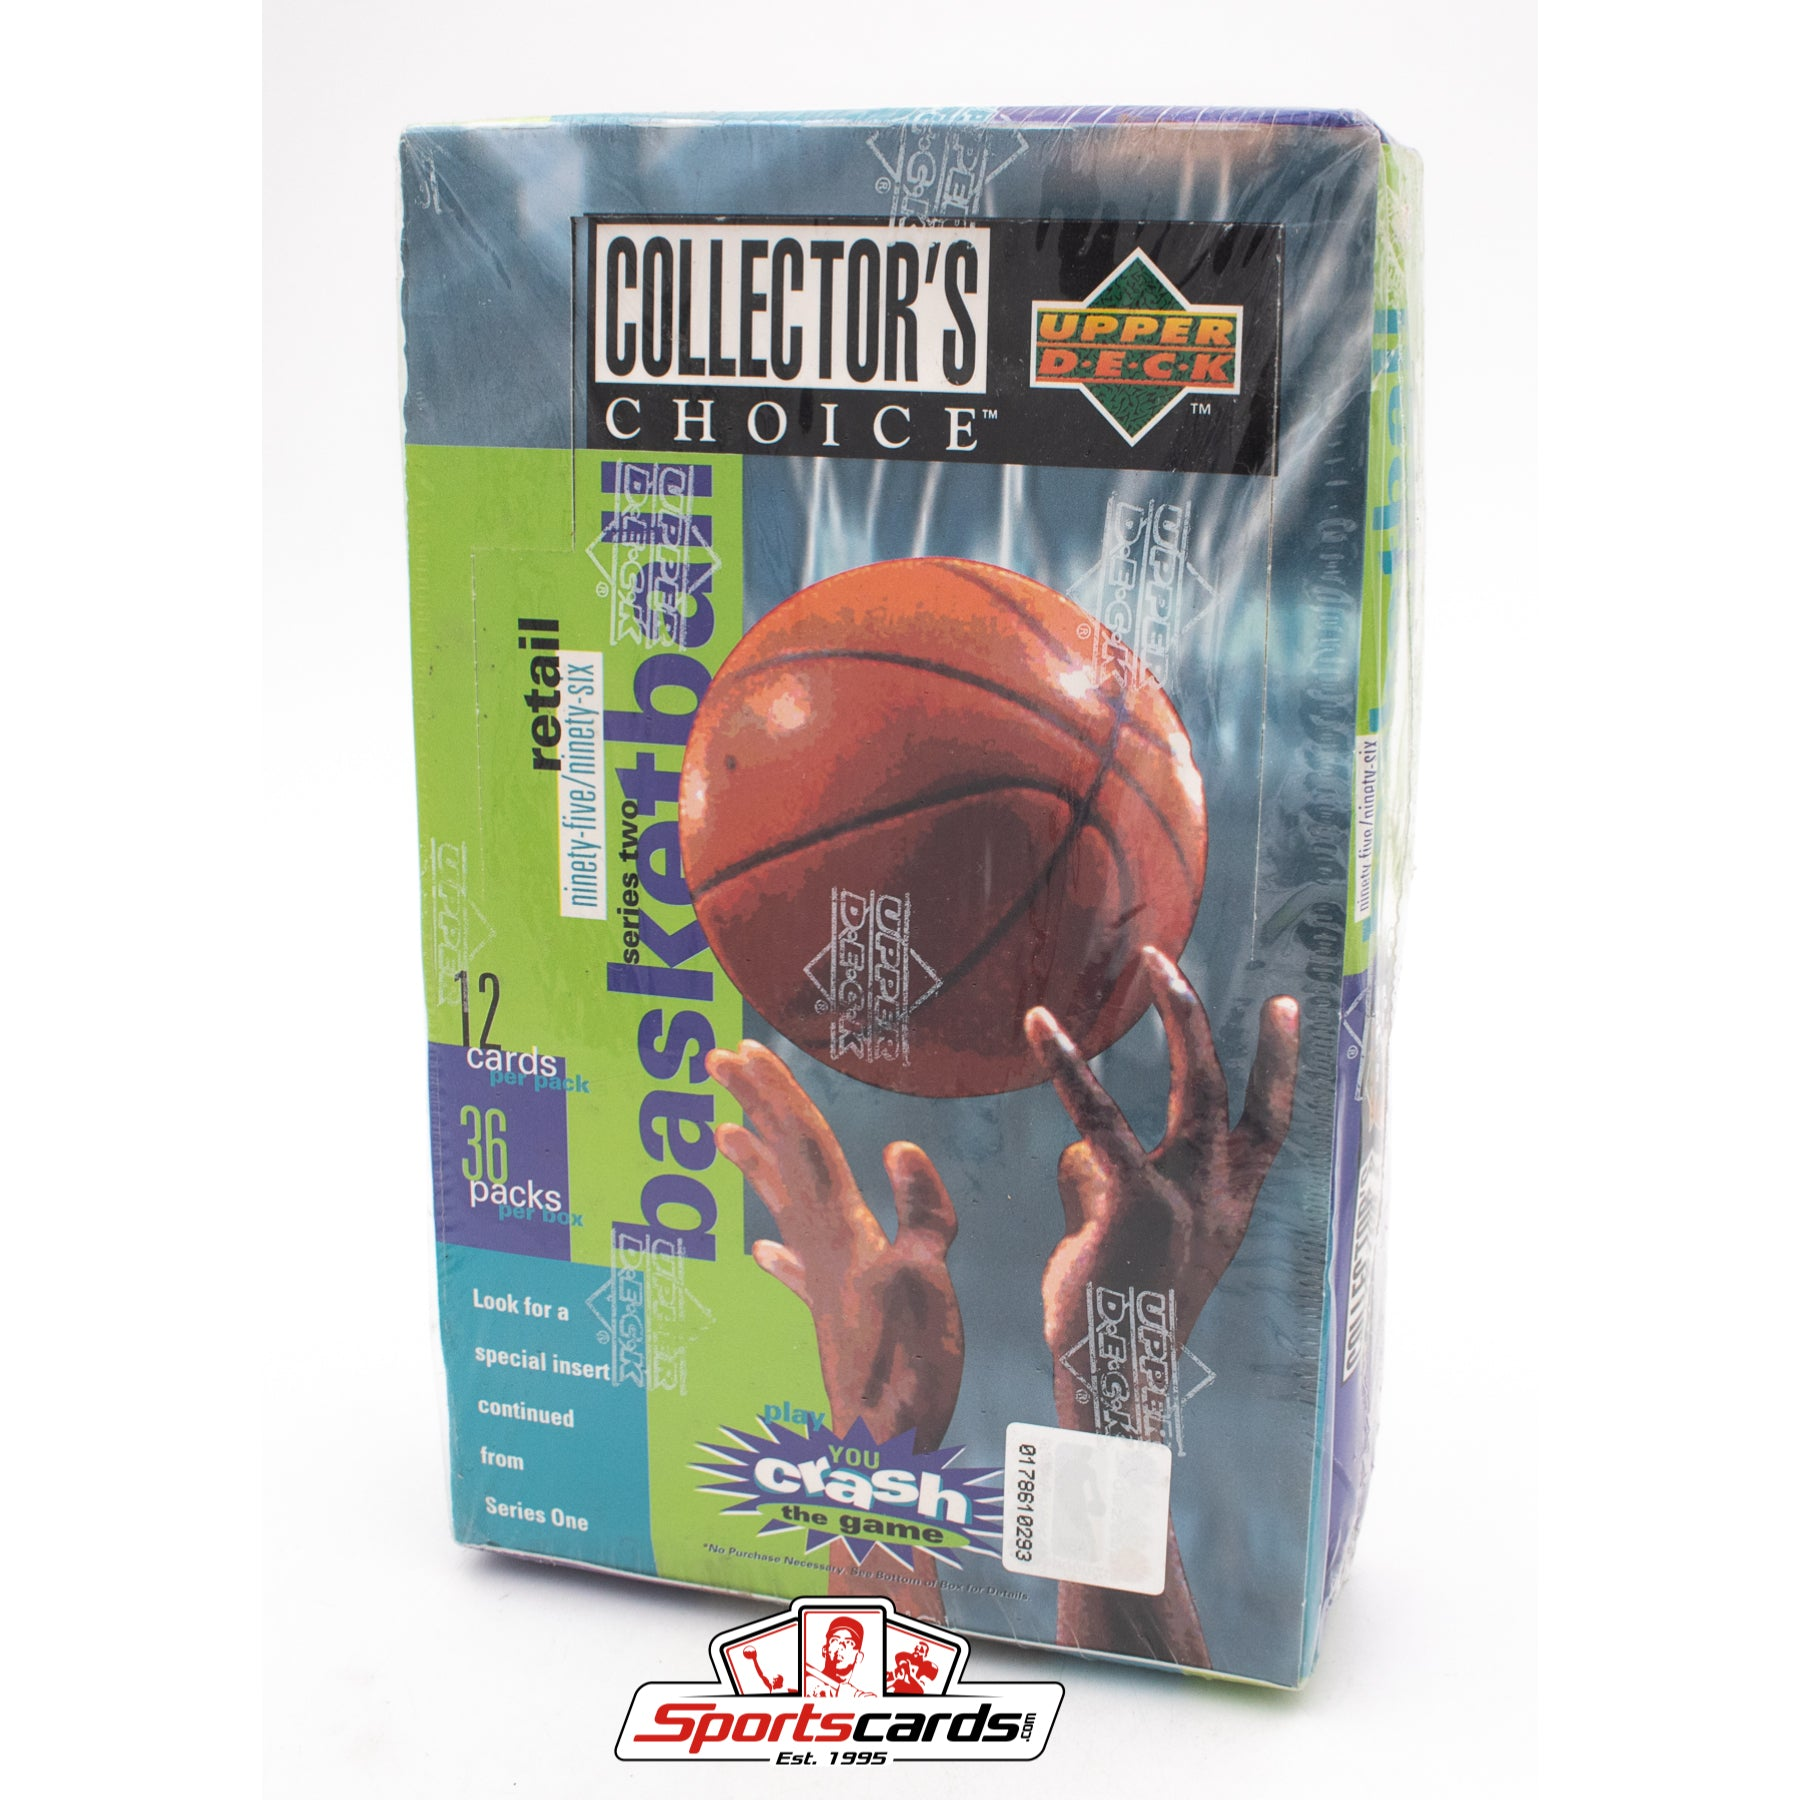 1995-96 Upper Deck Collectors Choice Basketball Factory Sealed Box